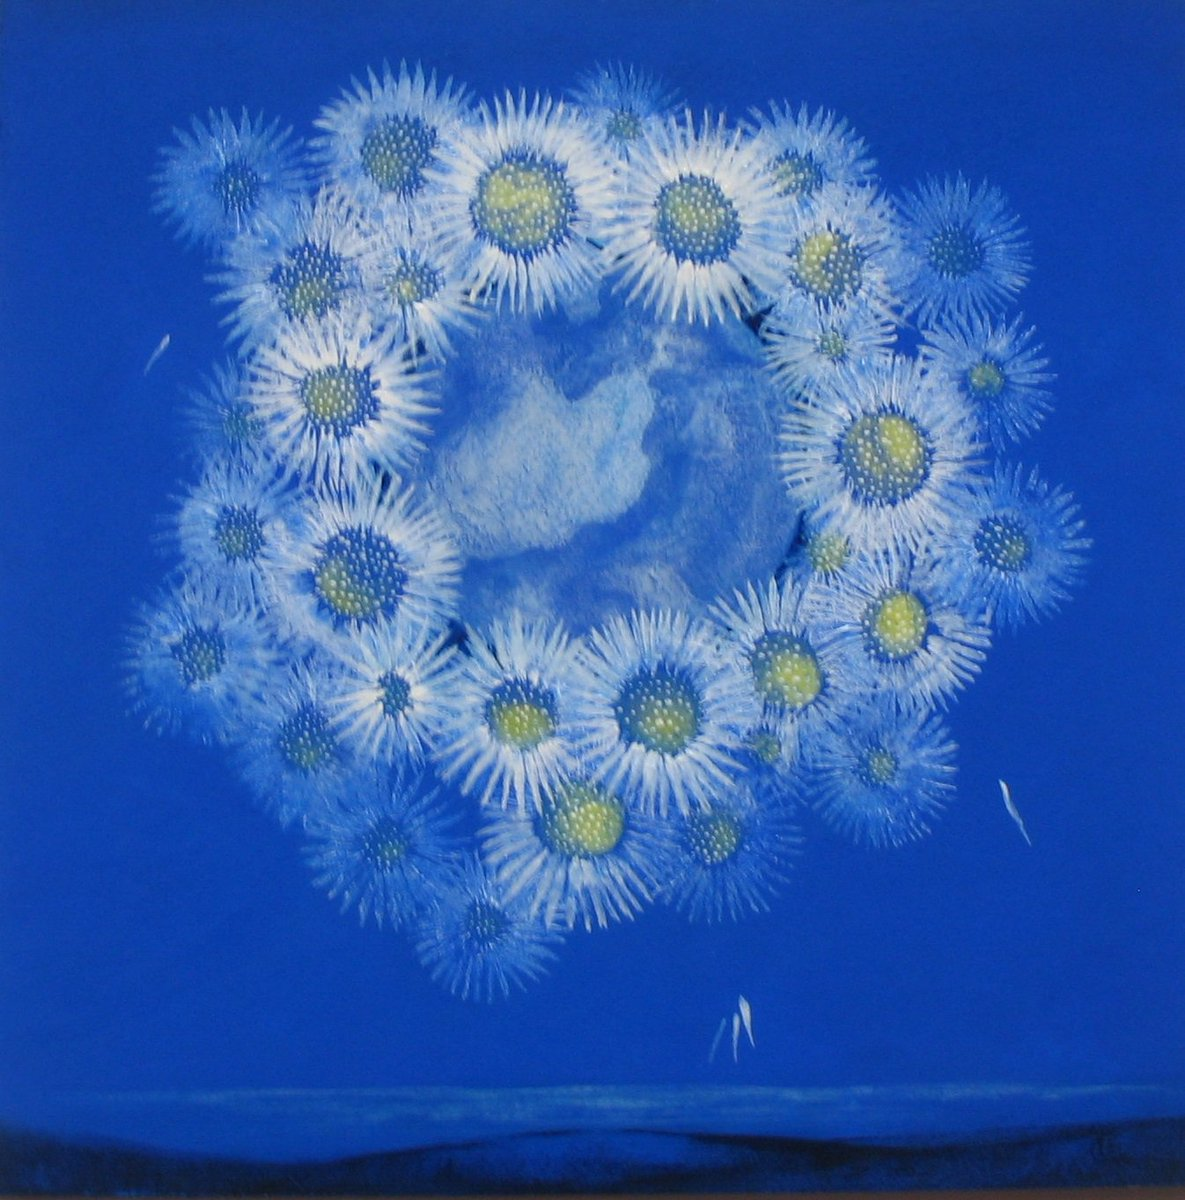 &#39;Daisy Lace Moon&#39; by @feclarkart 2016 Acrylic on board, available, 30cm x 30cm. #painting #fullmoon #daisy #blue #imagine #ScottishArtists <br>http://pic.twitter.com/GpsBj2LPGj